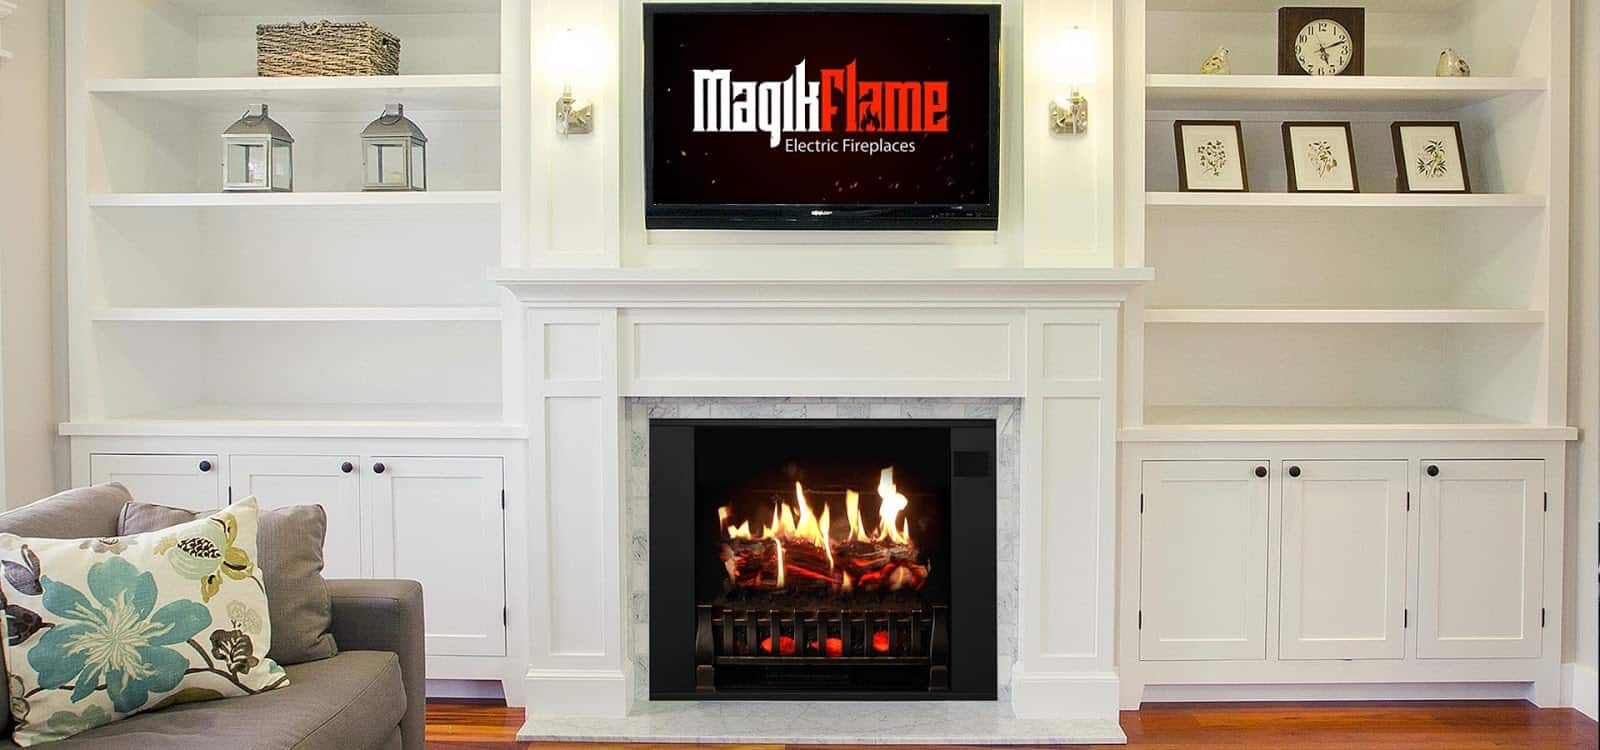 Tips for Fireplace Safety